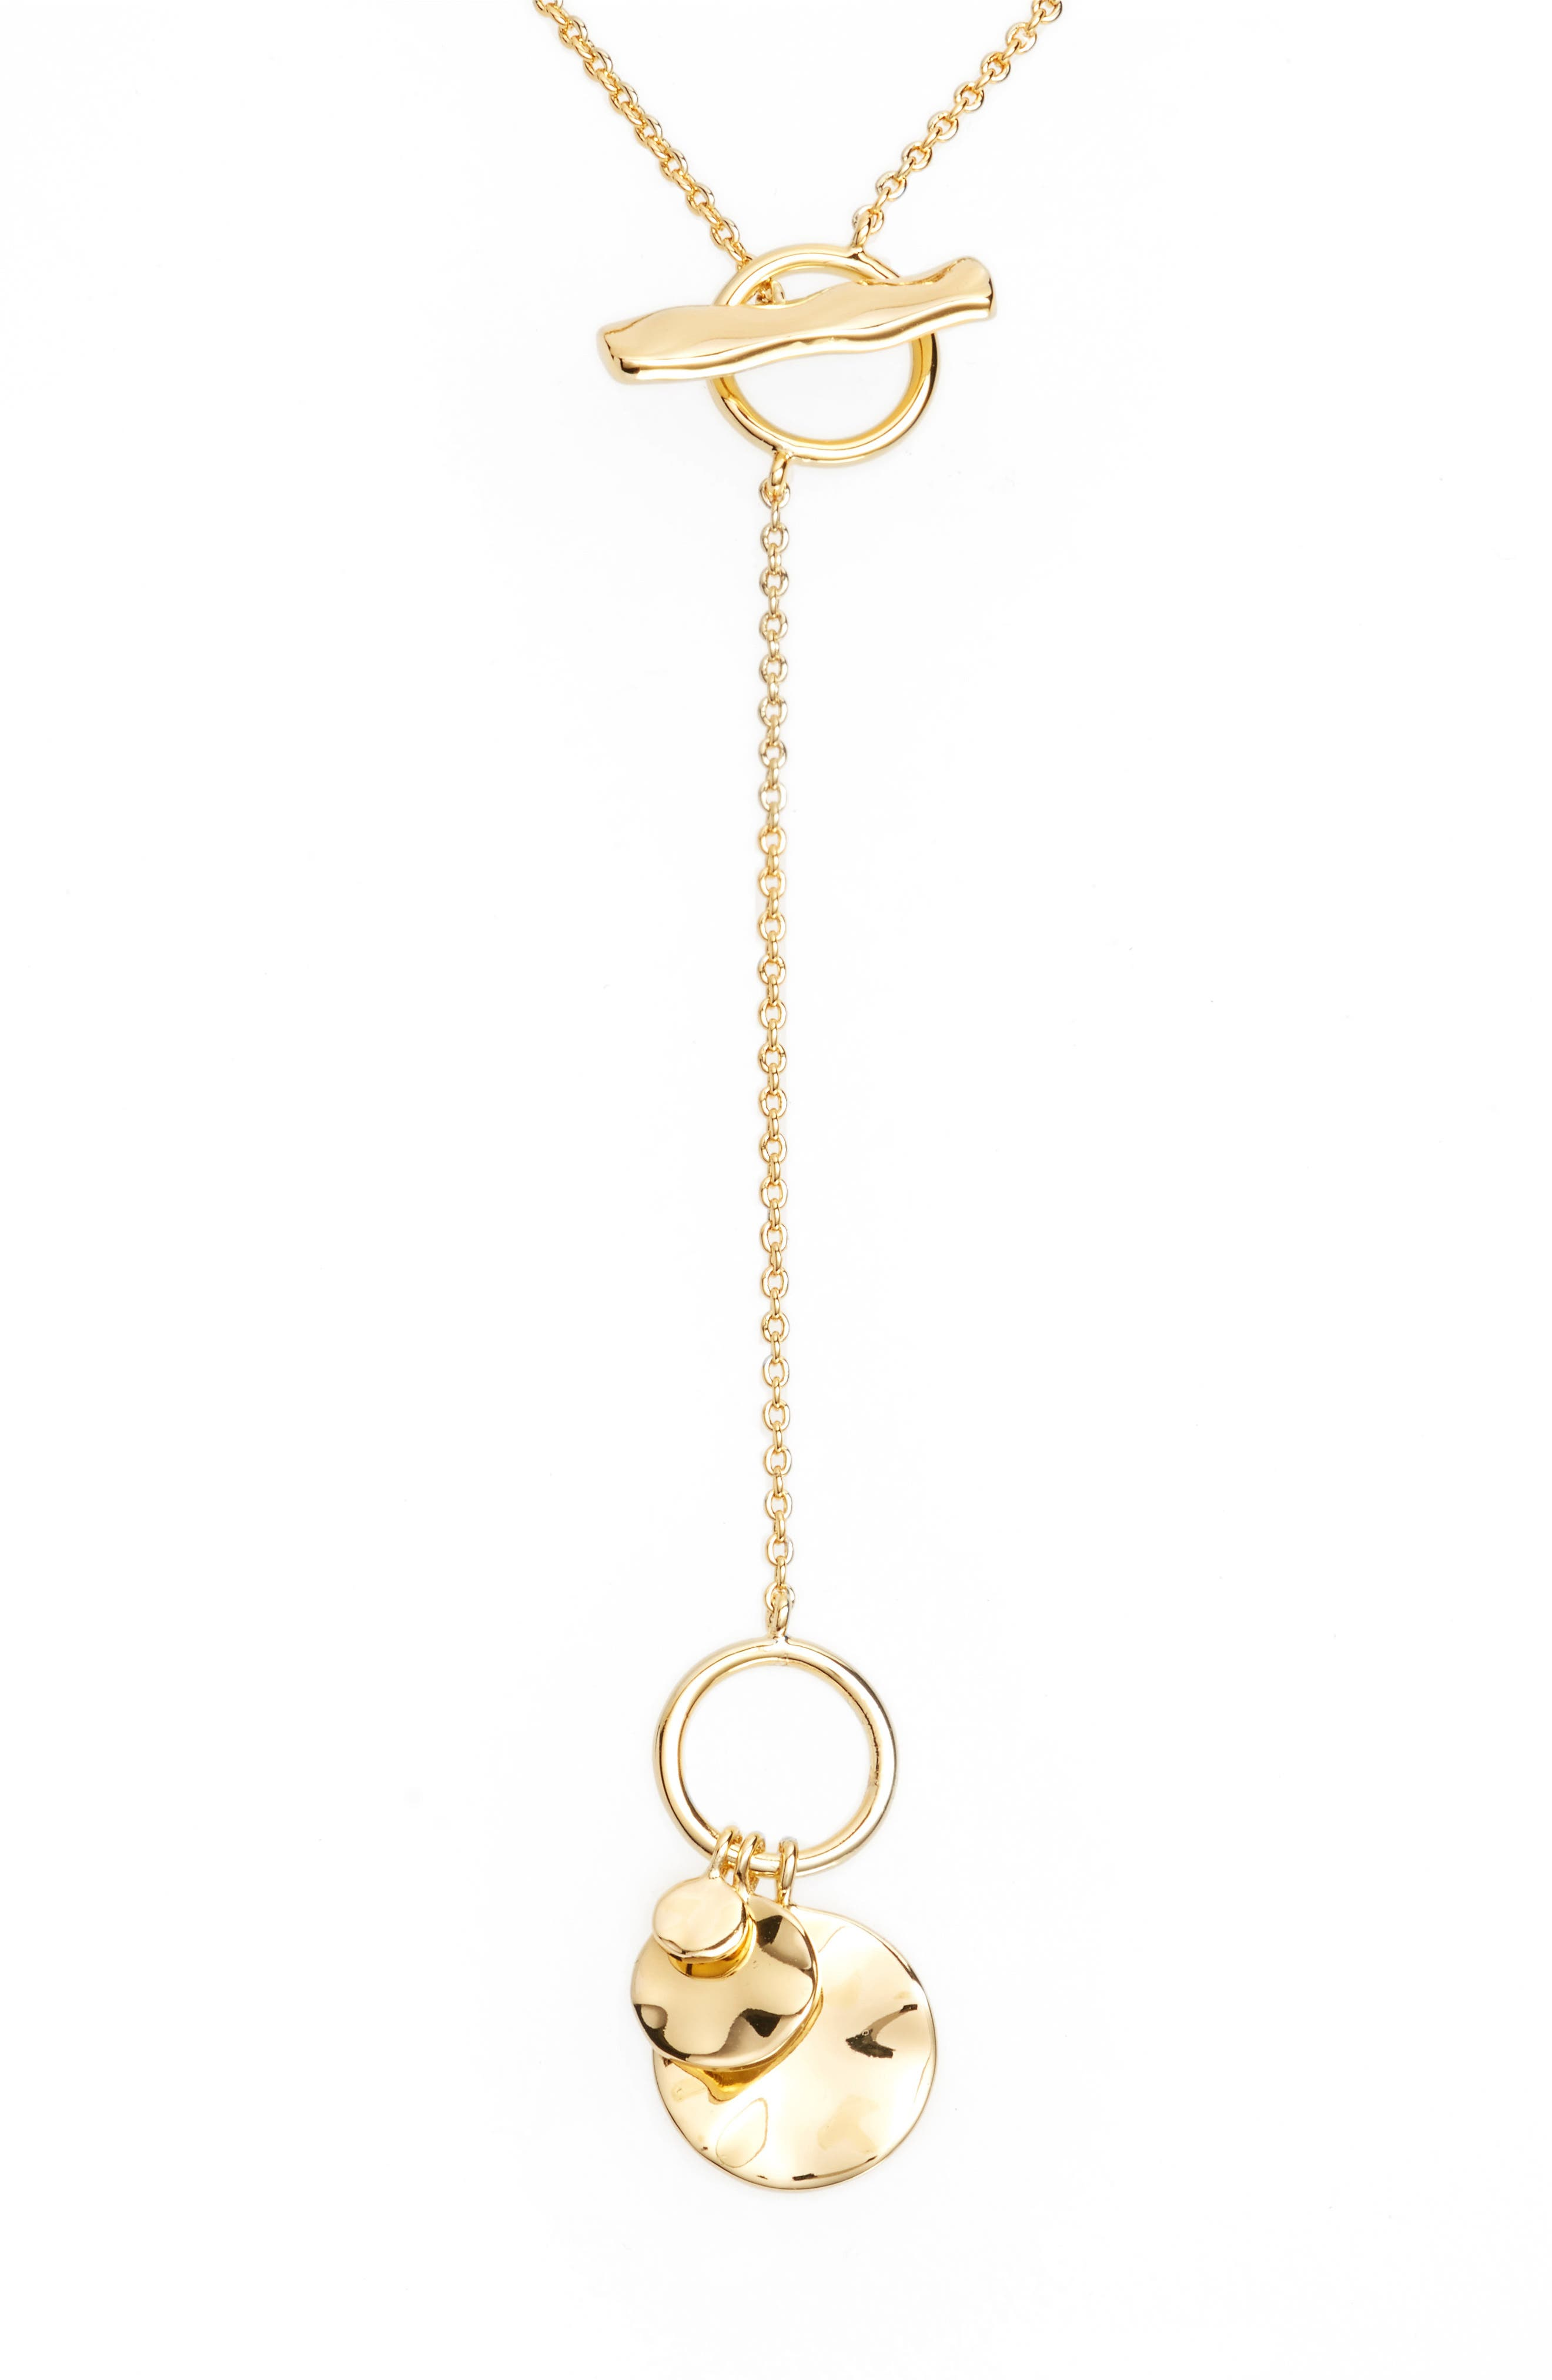 Chloe Small Hammered Disc Toggle Necklace,                             Alternate thumbnail 2, color,                             Gold